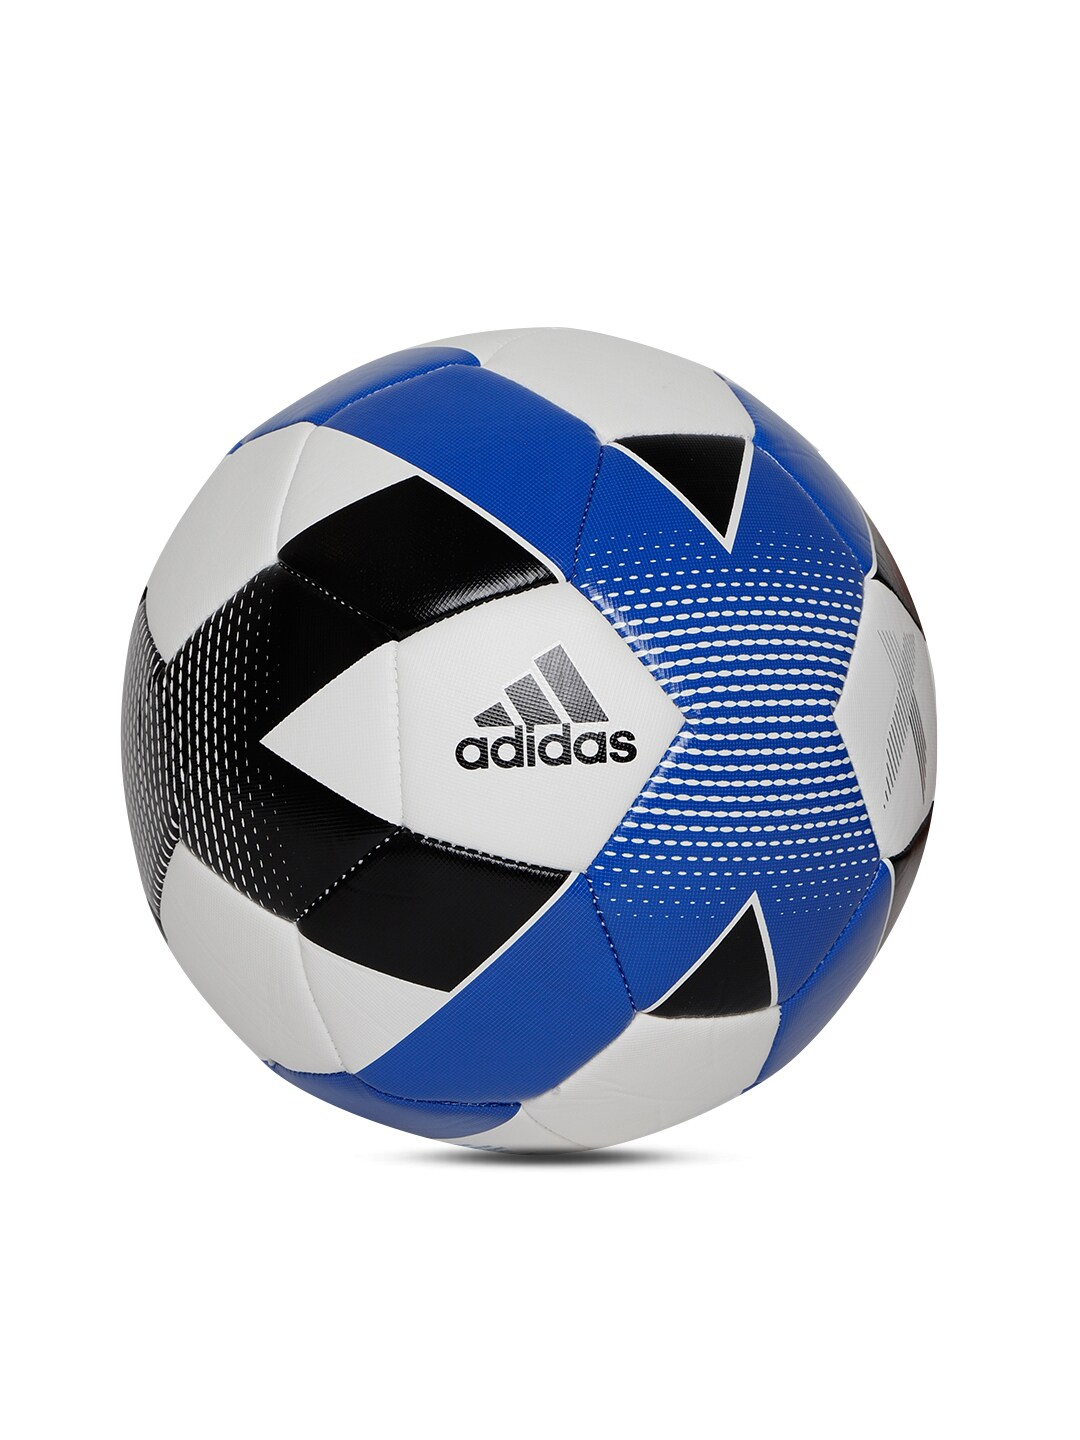 premium selection 8a9cd d2efd Adidas Football - Buy Adidas Soccer Ball Online in India   Myntra